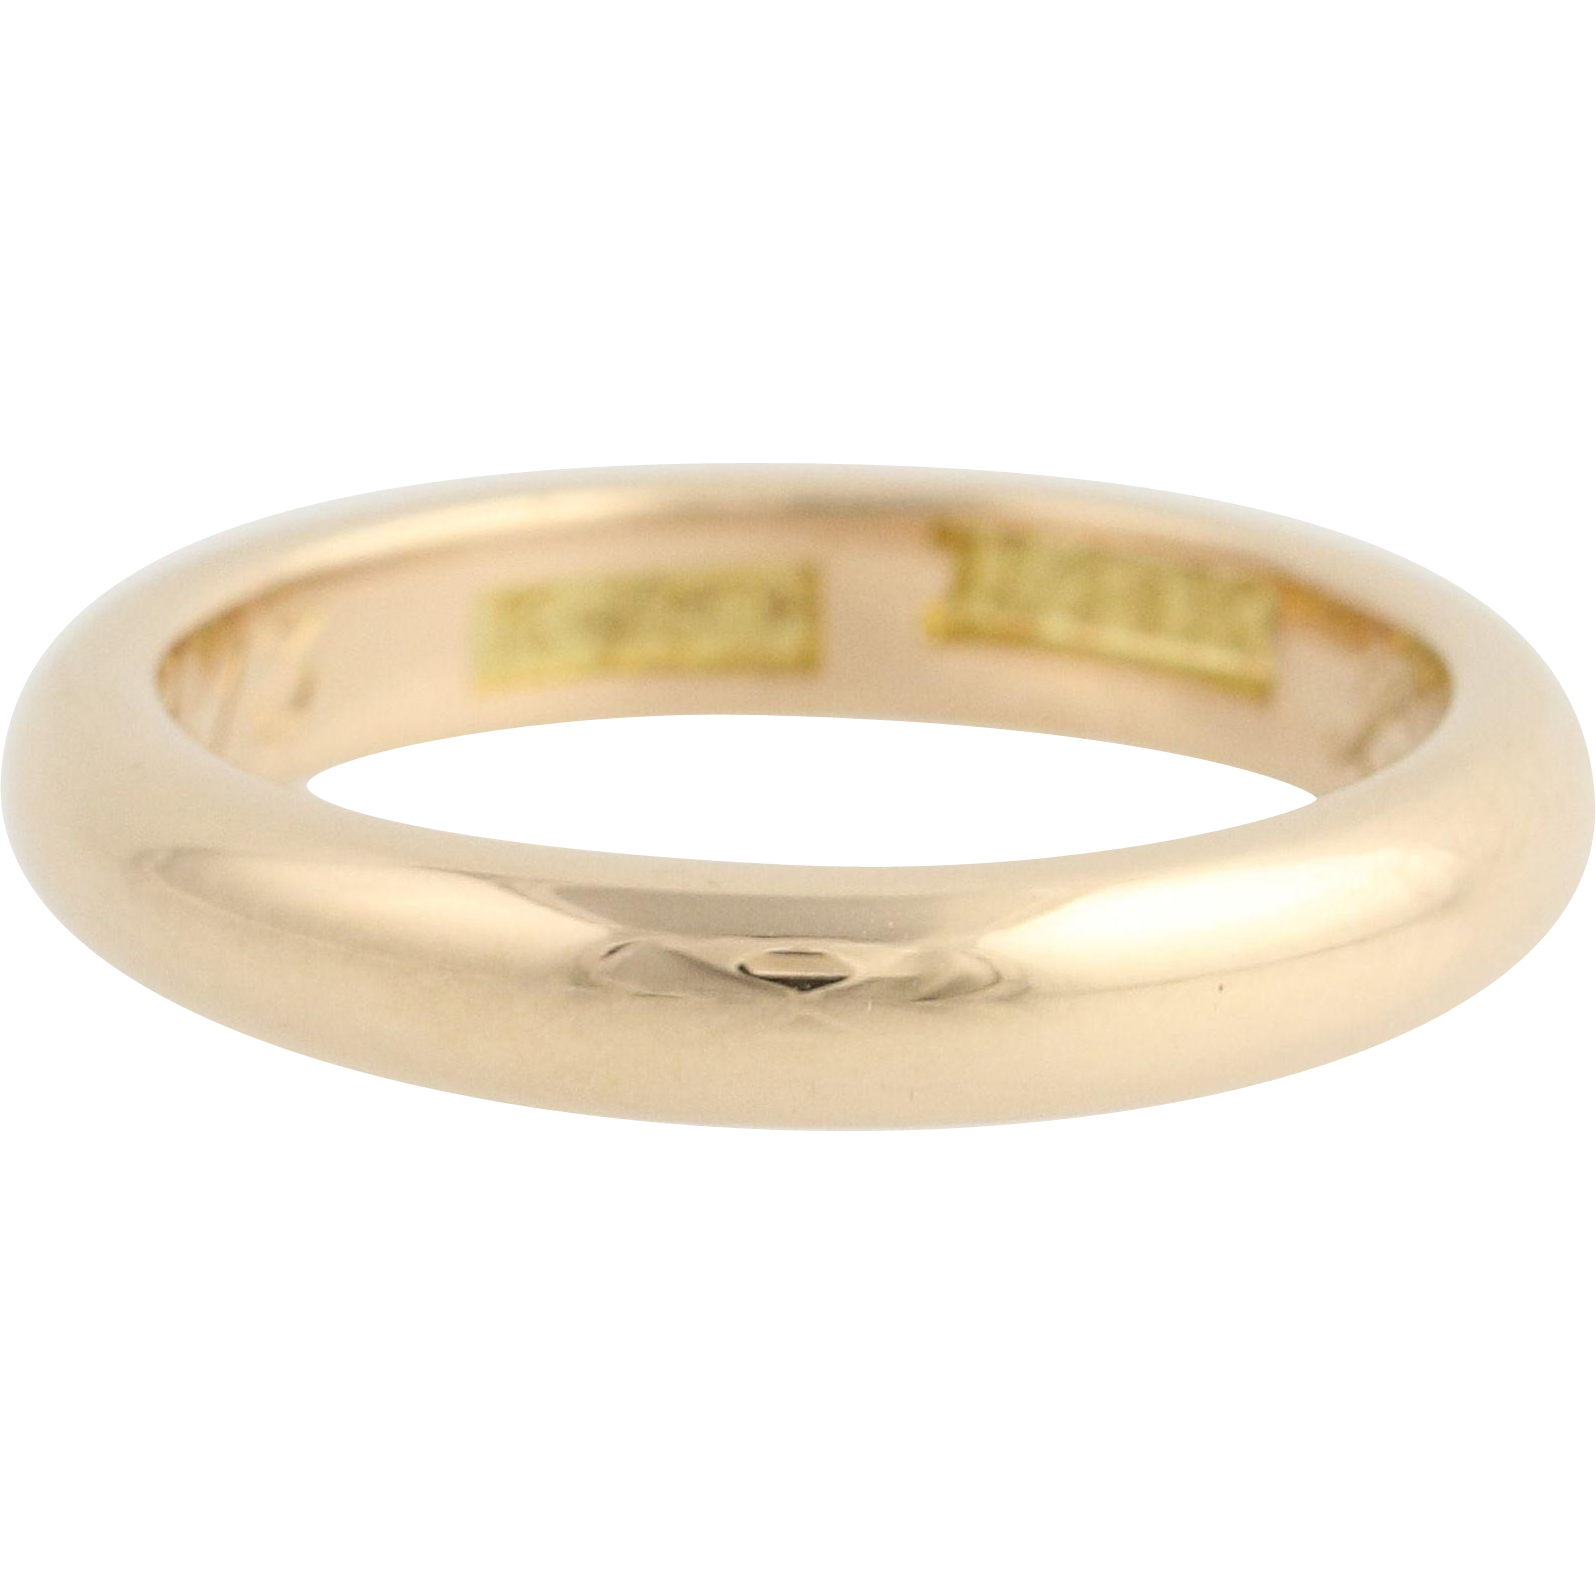 Antique Wedding Band - 14k Yellow Gold Women's Ring Circa 1913